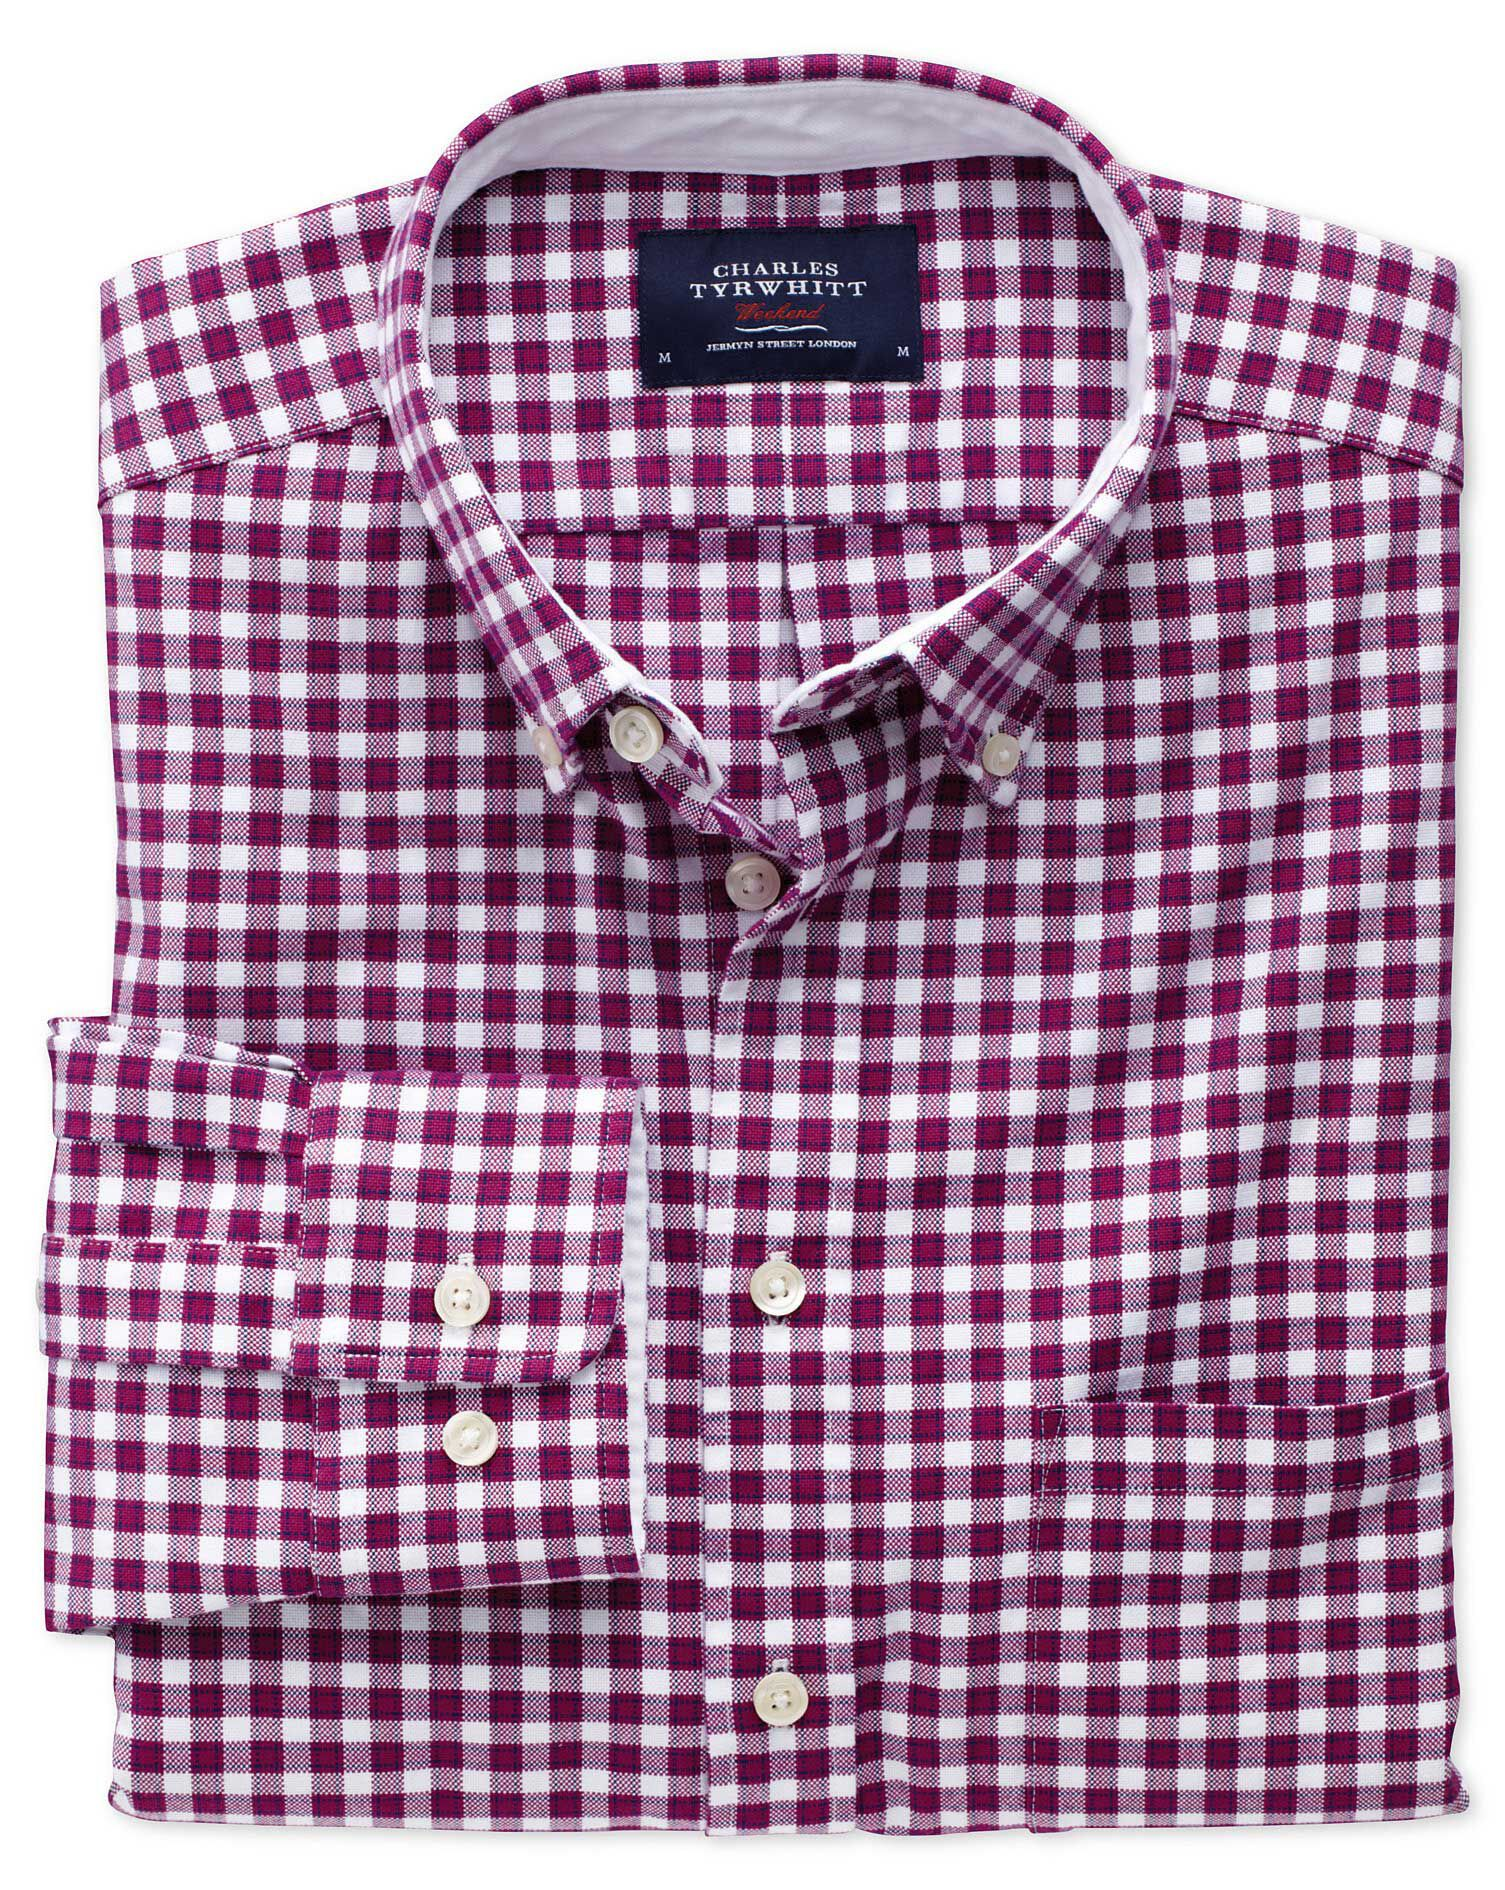 Extra Slim Fit Berry Check Washed Oxford Cotton Shirt Single Cuff Size Small by Charles Tyrwhitt